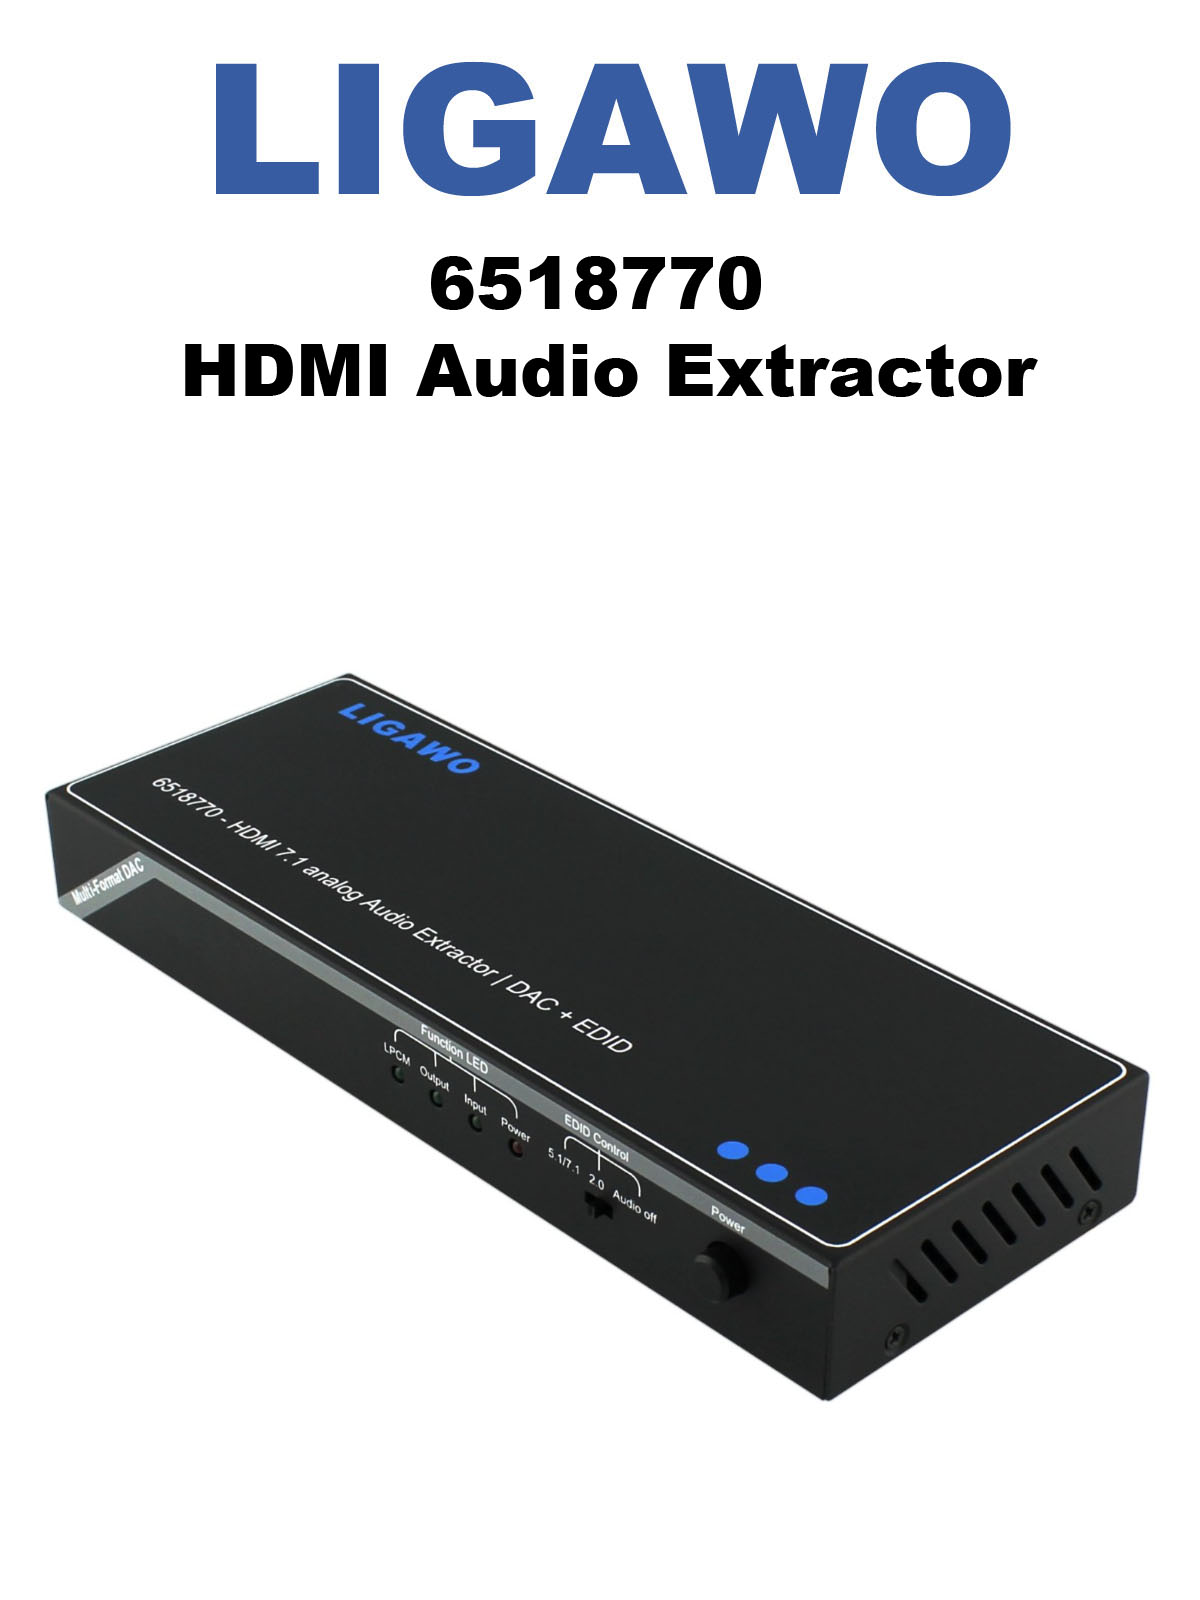 Ligawo 6518770 HDMI Audio Extractor